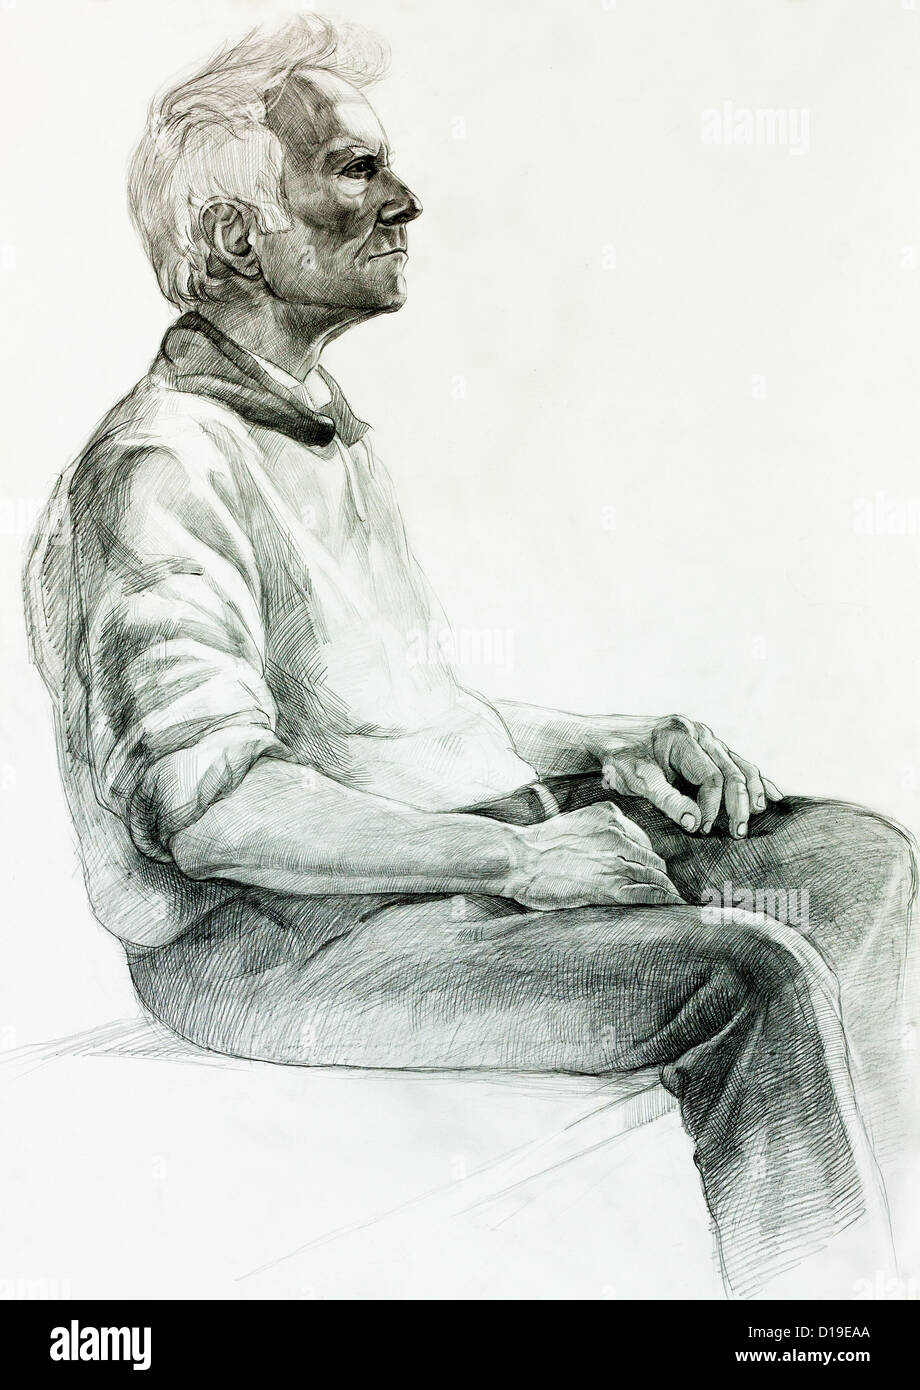 Original pencil or drawing charcoal and hand drawn painting or working sketch of a man sitting free composition